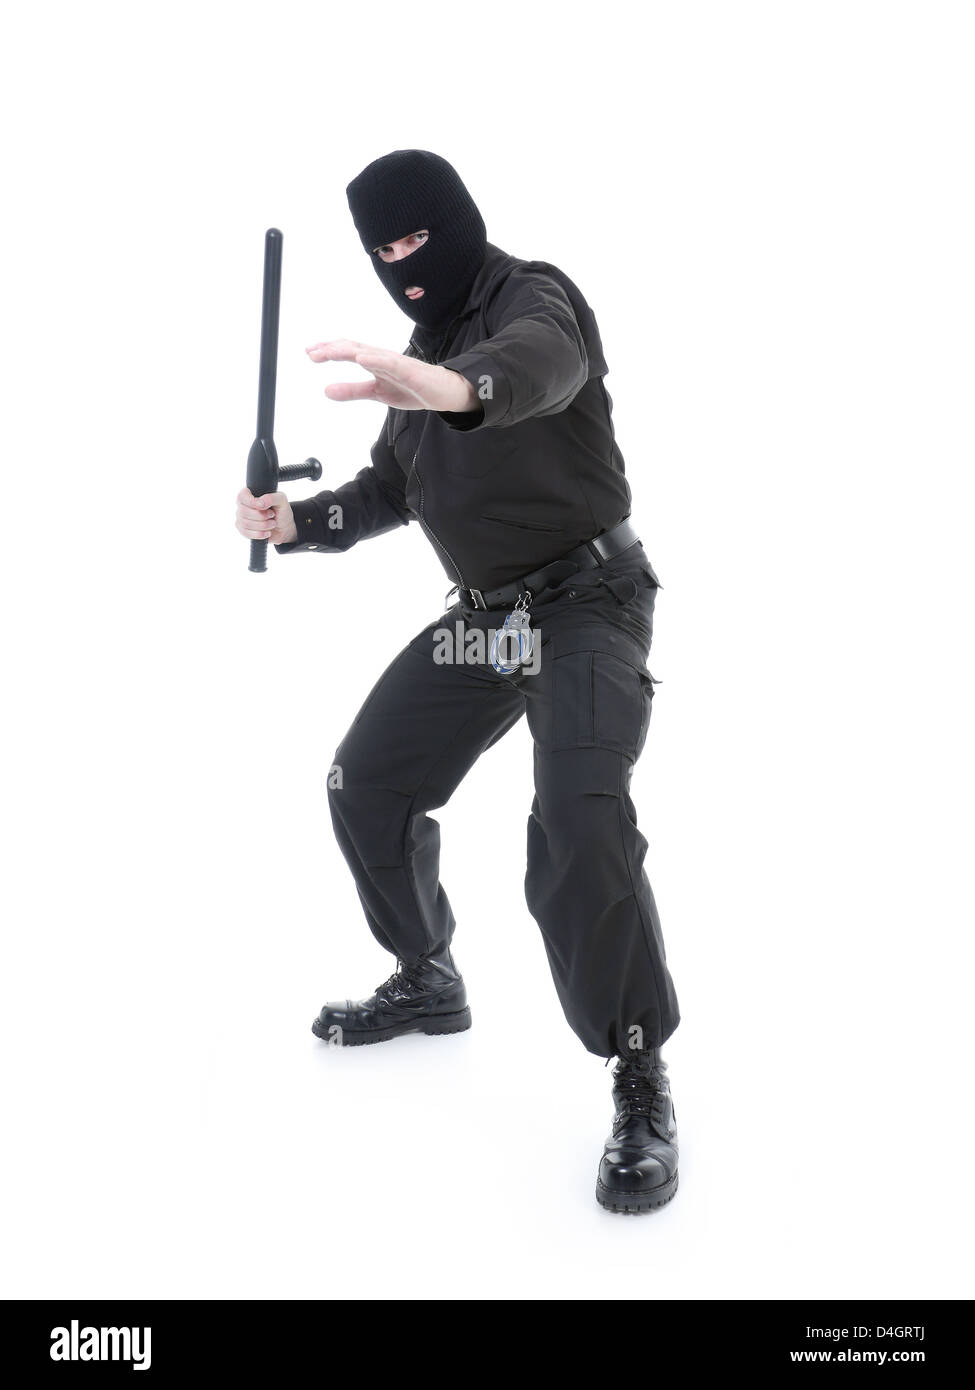 Anti-terrorist police guy wearing black uniform and black mask holding firmly police club in one hand - Stock Image